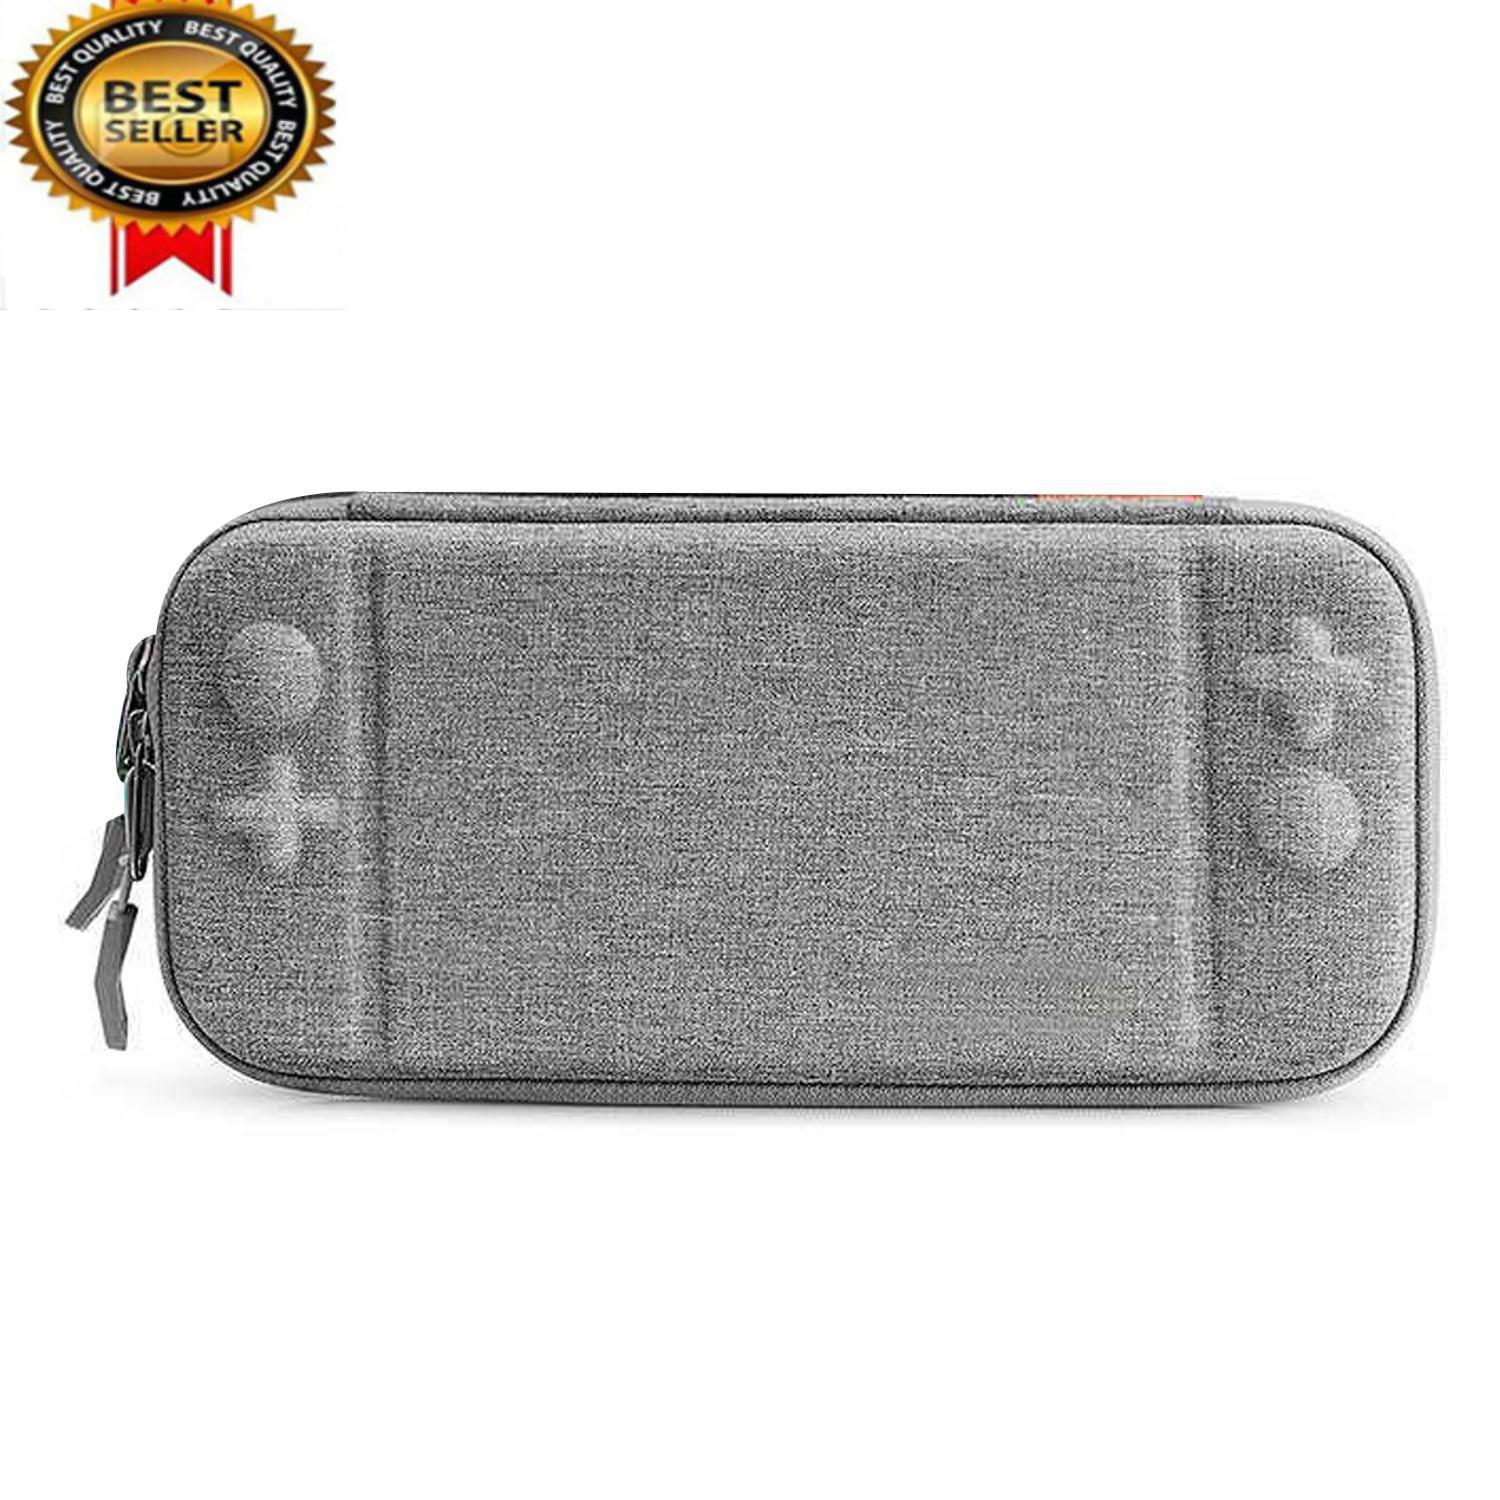 Portable Travel Protective Case Eva Hard Shell Storage Carrying Pouch Bag Compatible With Nintendo Switch Console By Stoneky.